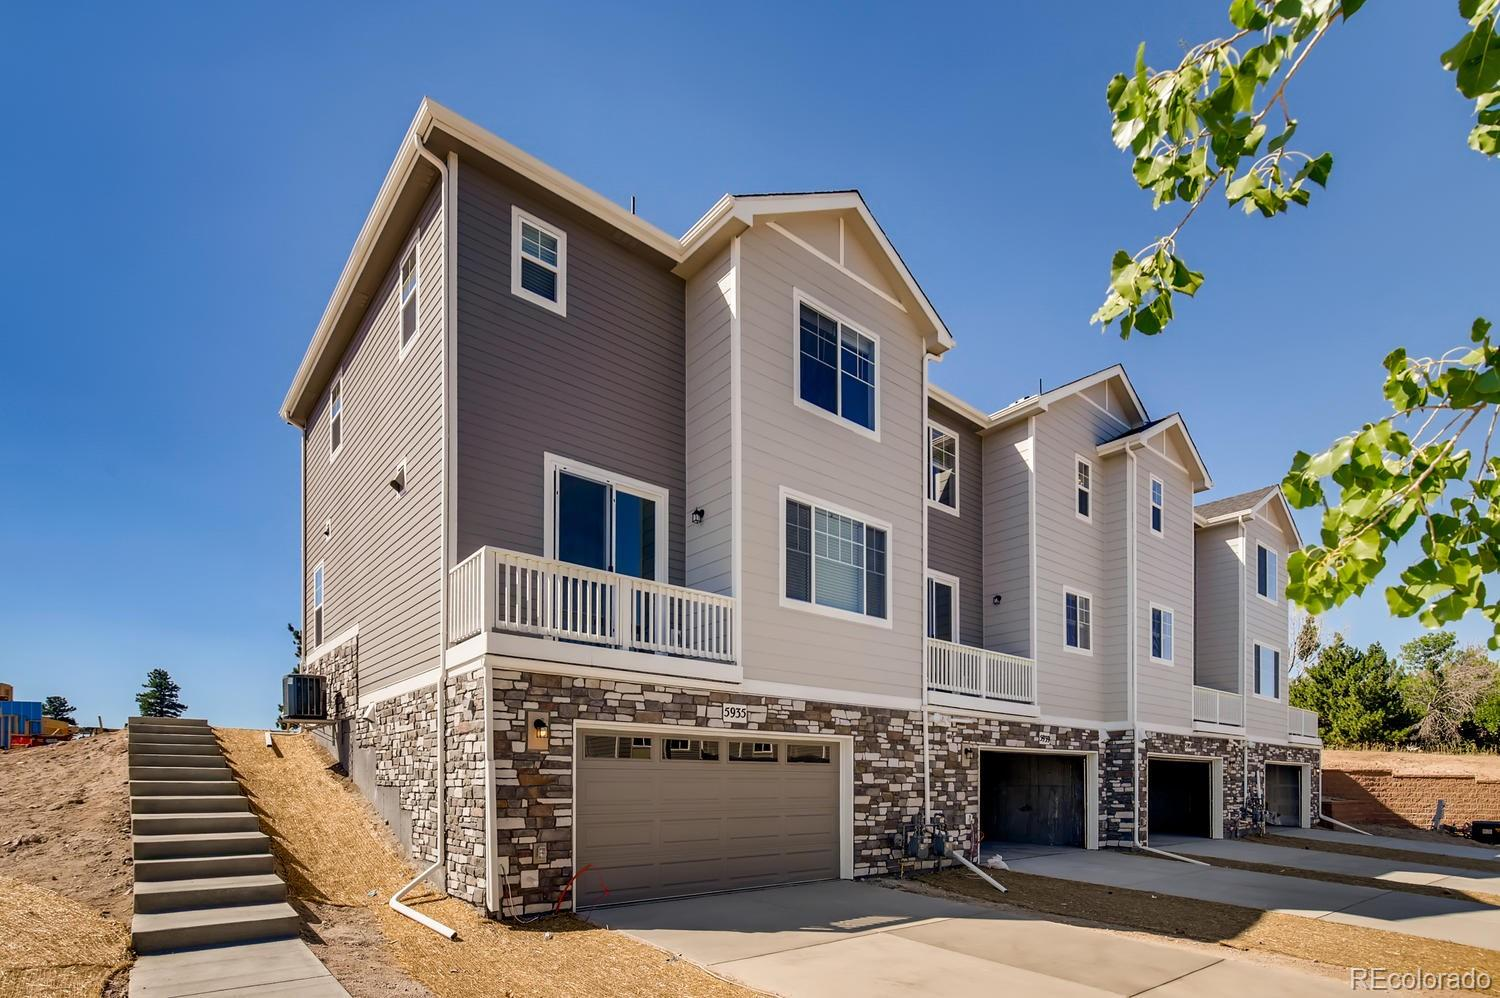 """Luxury Townhome in the heart of Castlerock with an early 2021 completion! The beautiful Adderbrooke is a 2 bed, 2.5 bath, with oversized attached 2 car garage. Kitchen includes stainless steel appliances, granite countertops, gas range, dishwasher, and built-in microwave.  Open floorplan with spacious living area, kitchen island, dining space, and is perfect for entertaining.  Both bedrooms have en-suite bathrooms providing privacy and making it a great roommate layout.  Upstairs laundry conveniently located near both bedrooms, and loft area makes for a cozy office space.  Includes energy-efficient furnace, A/C, tankless water heater, and 2"""" white blinds. Right outside your back door, you can enjoy miles of walking trails through the beautiful scenery of the nature filled canyons. Don't miss out on living at The Enclave, just moments away from major highways, shopping, dining, award winning Douglas County Schools, and multiple outdoor activities!"""